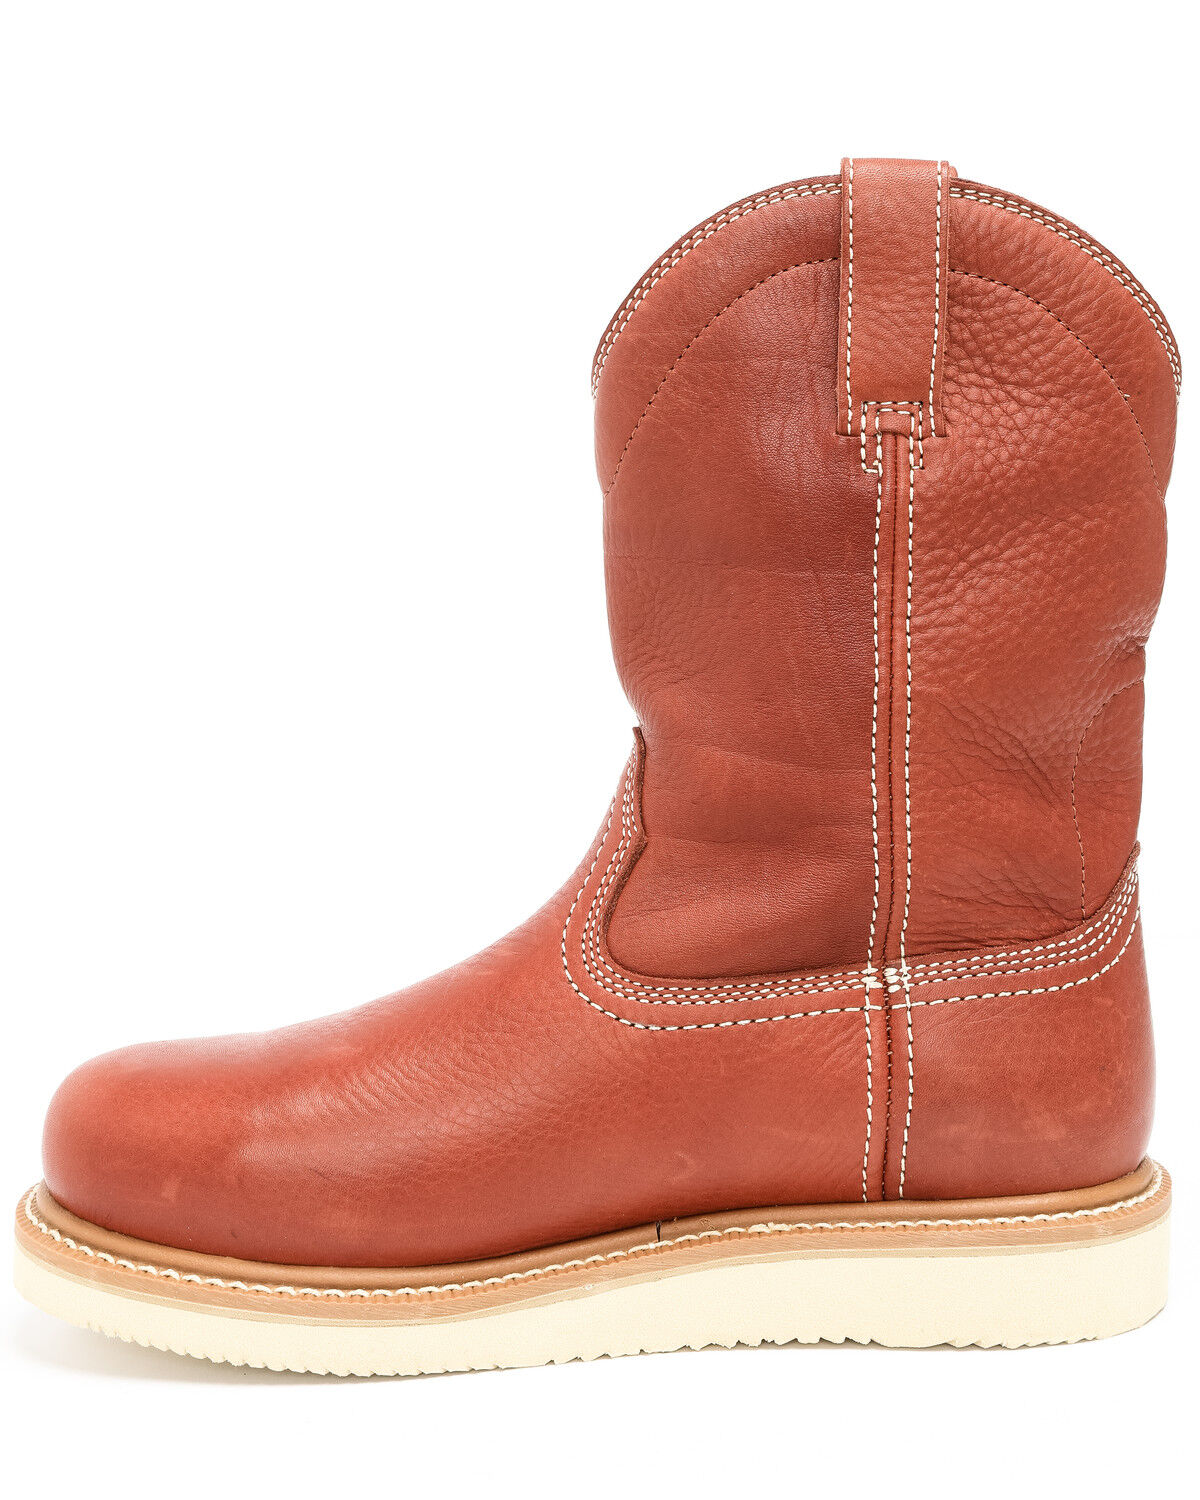 Hawx Men's Wedge Pull-On Work Boots